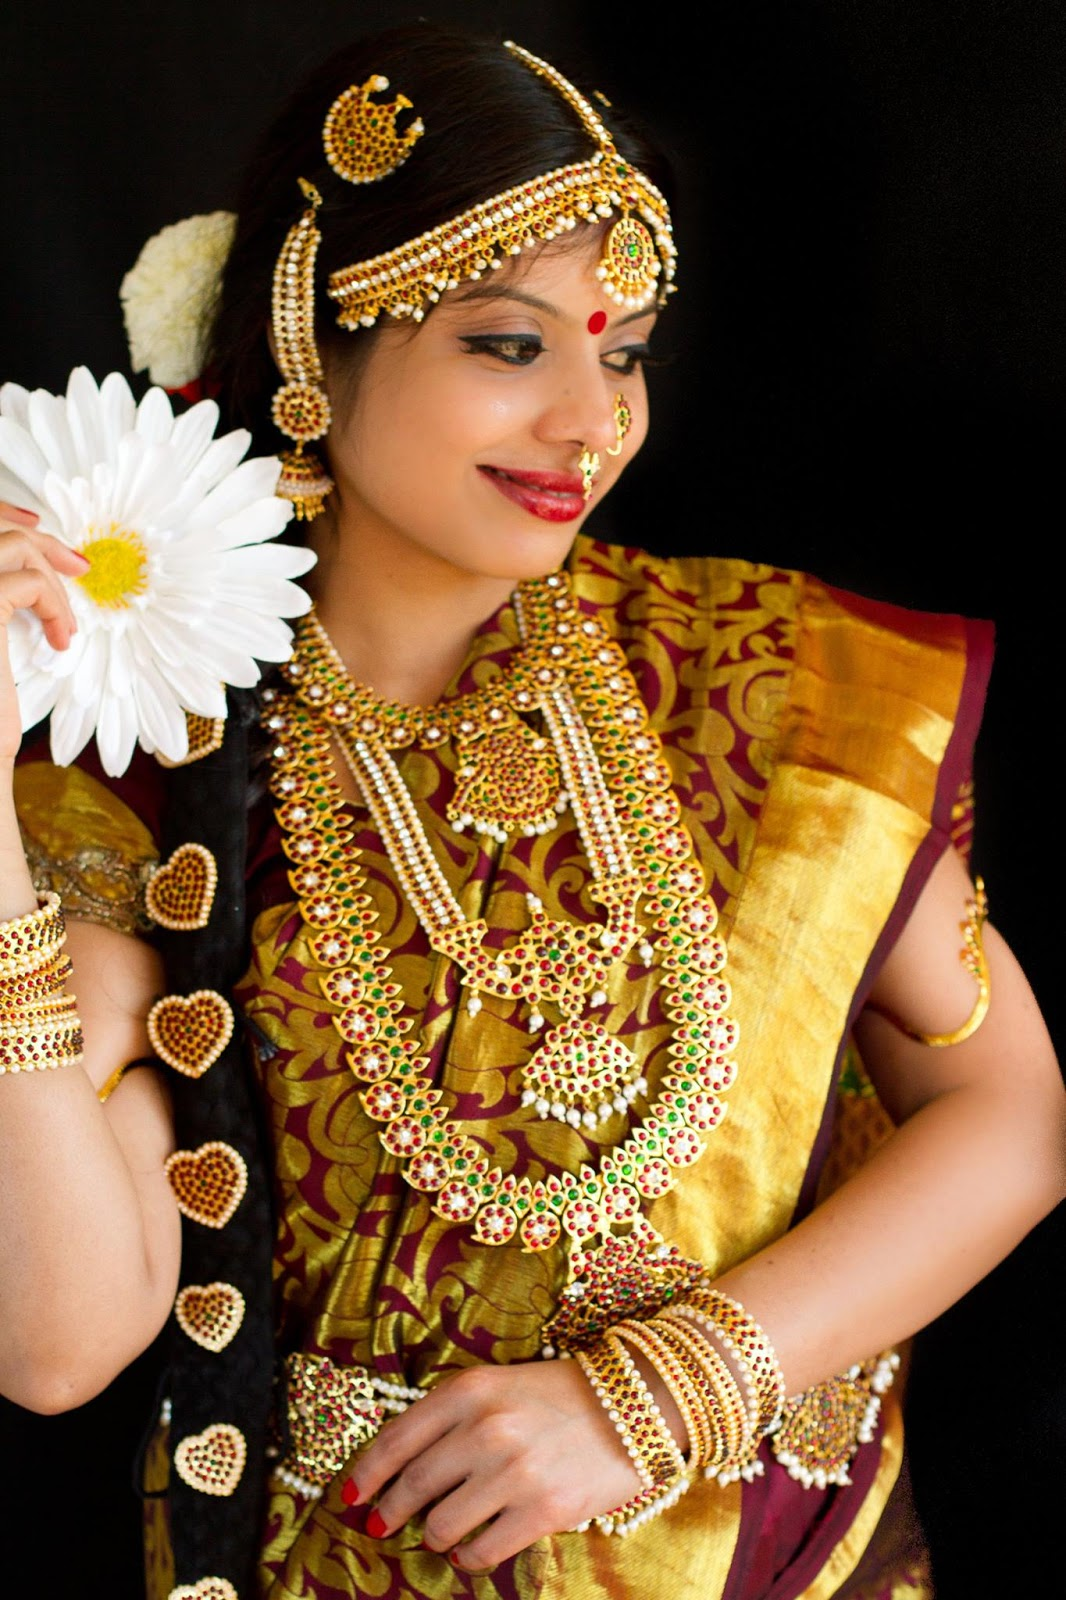 South Indian Bride, Bridal look, Redstone Jewelry, beautiful girl in Indian jewelry